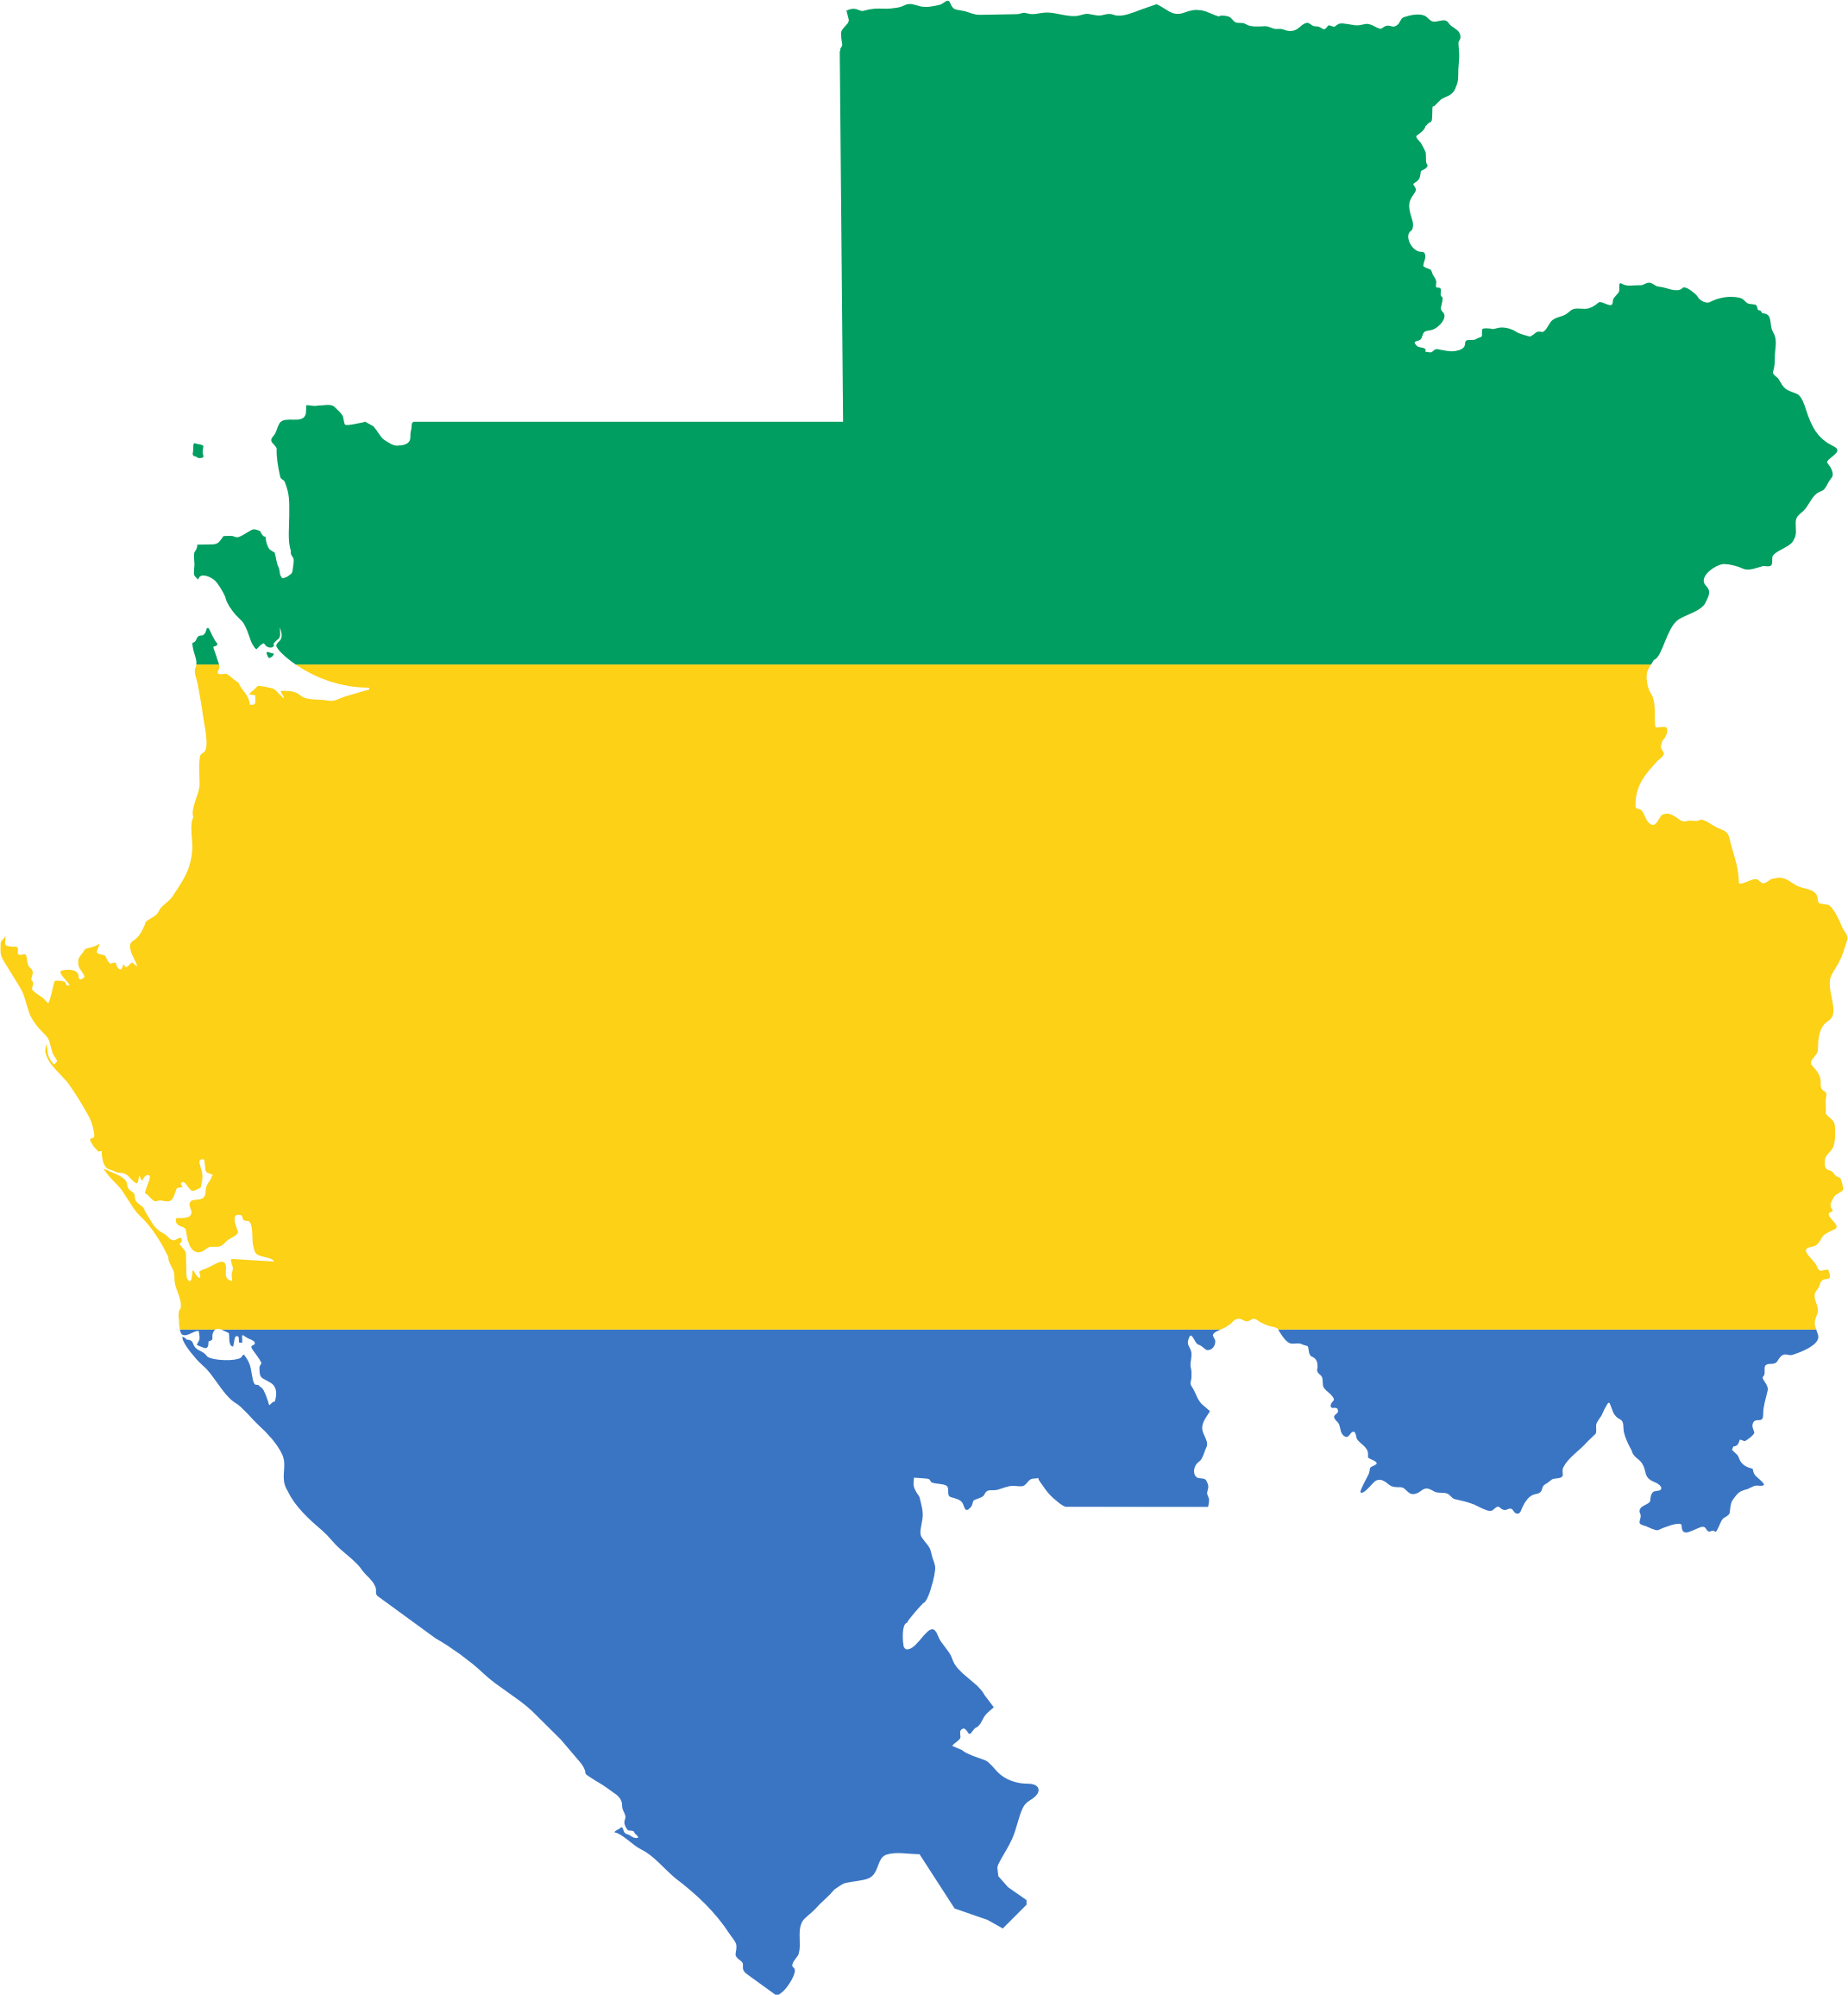 Clipart Gabon Flag Map - Gabon blank map